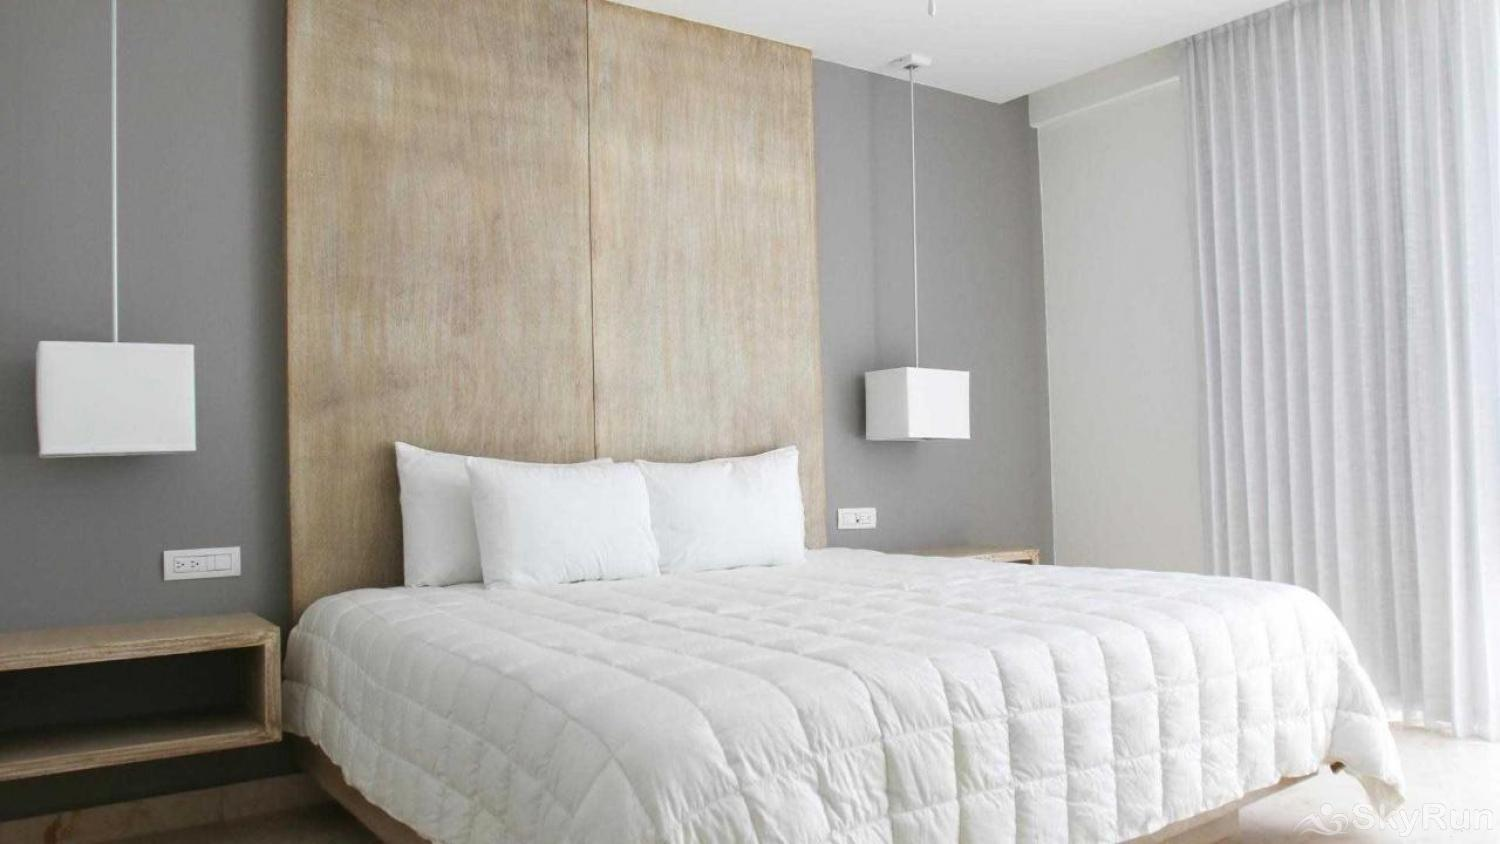 Modern Beach Anah 006D | Playa del Carmen Master king bedroom luxury condo Playa del Carmen